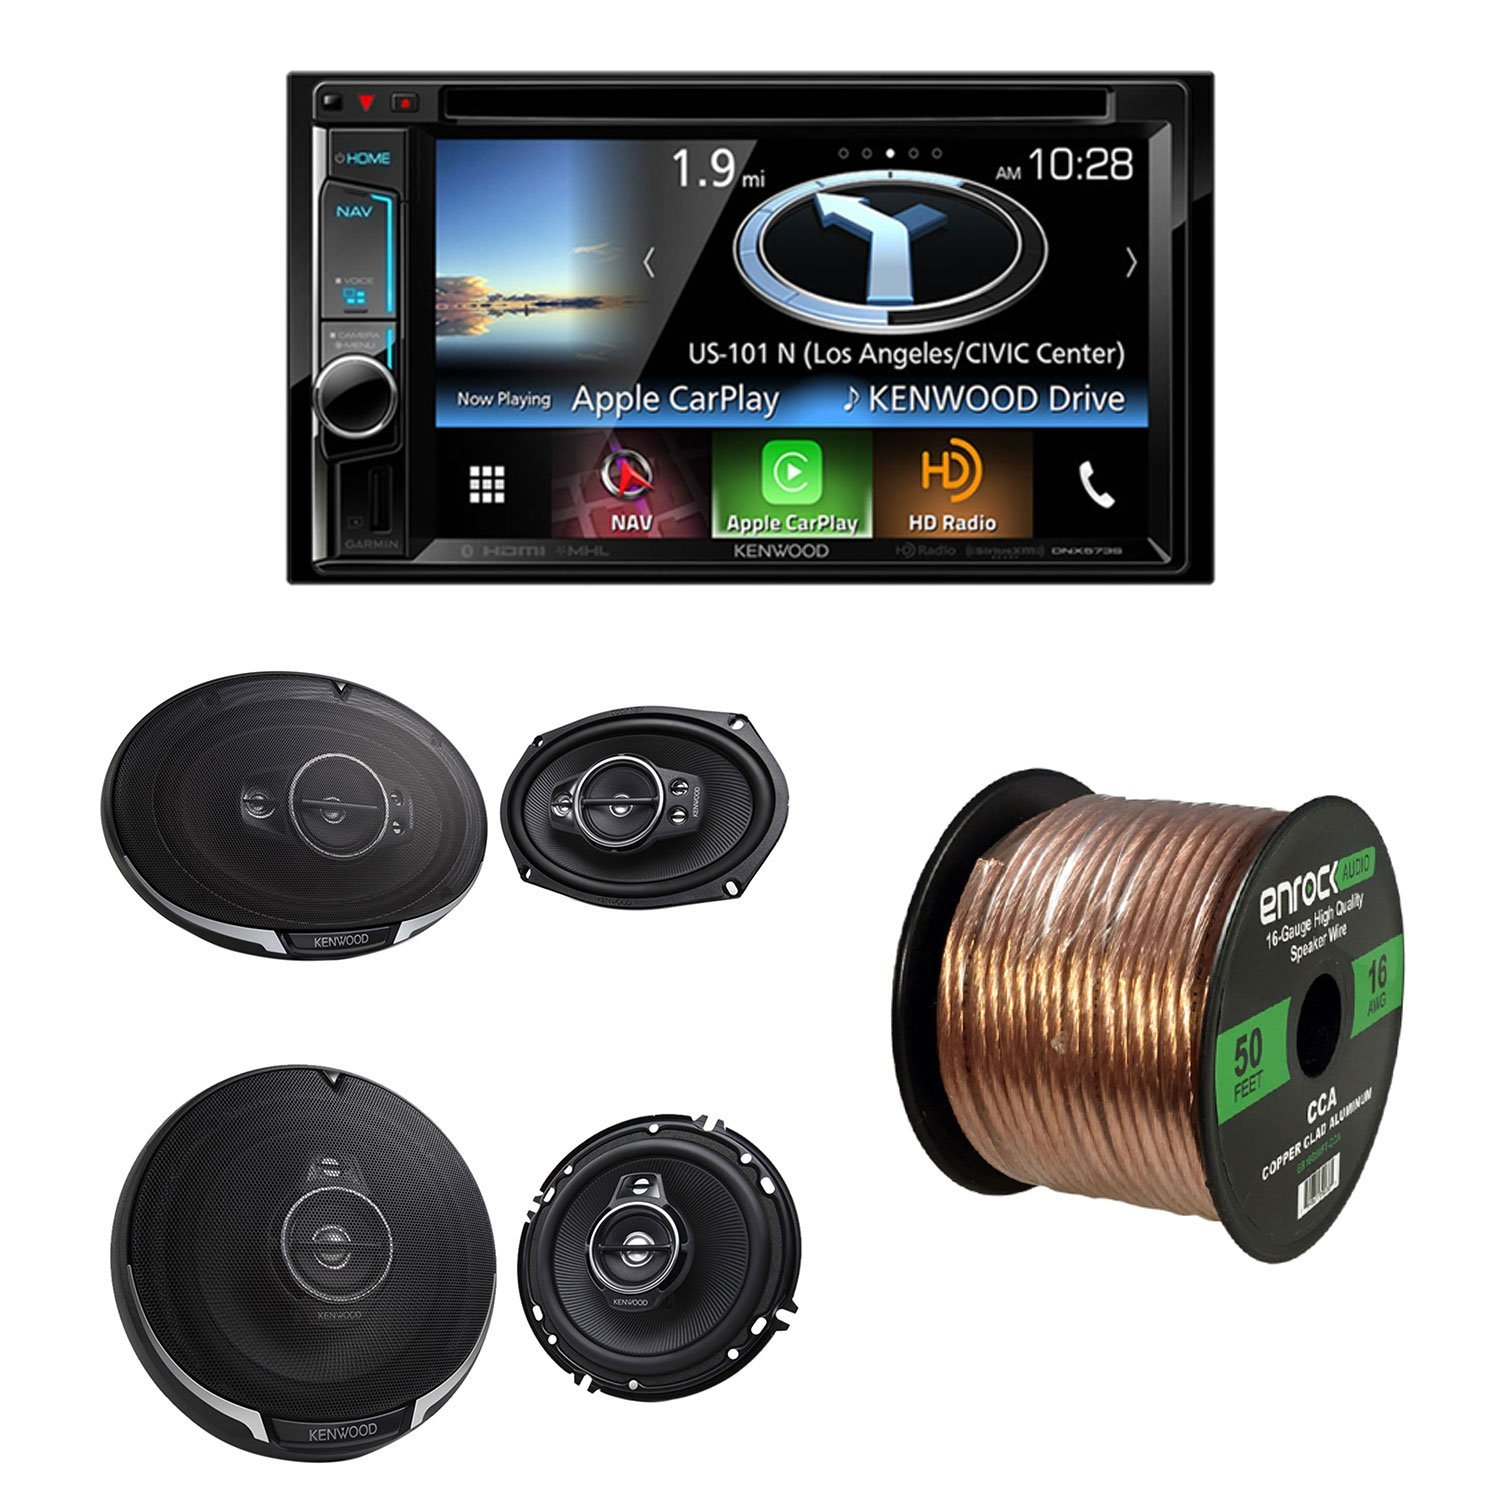 "Kenwood DNX573S 2-DIN Bluetooth Navigation System 6.2"" Touchscreen & DVD, Kenwood KFC- 6995PS 6.5"" 2-Way and KFC-1695PS 6.5"" 3-Way Car Speaker Black and 50' 16 Gauge Wire"